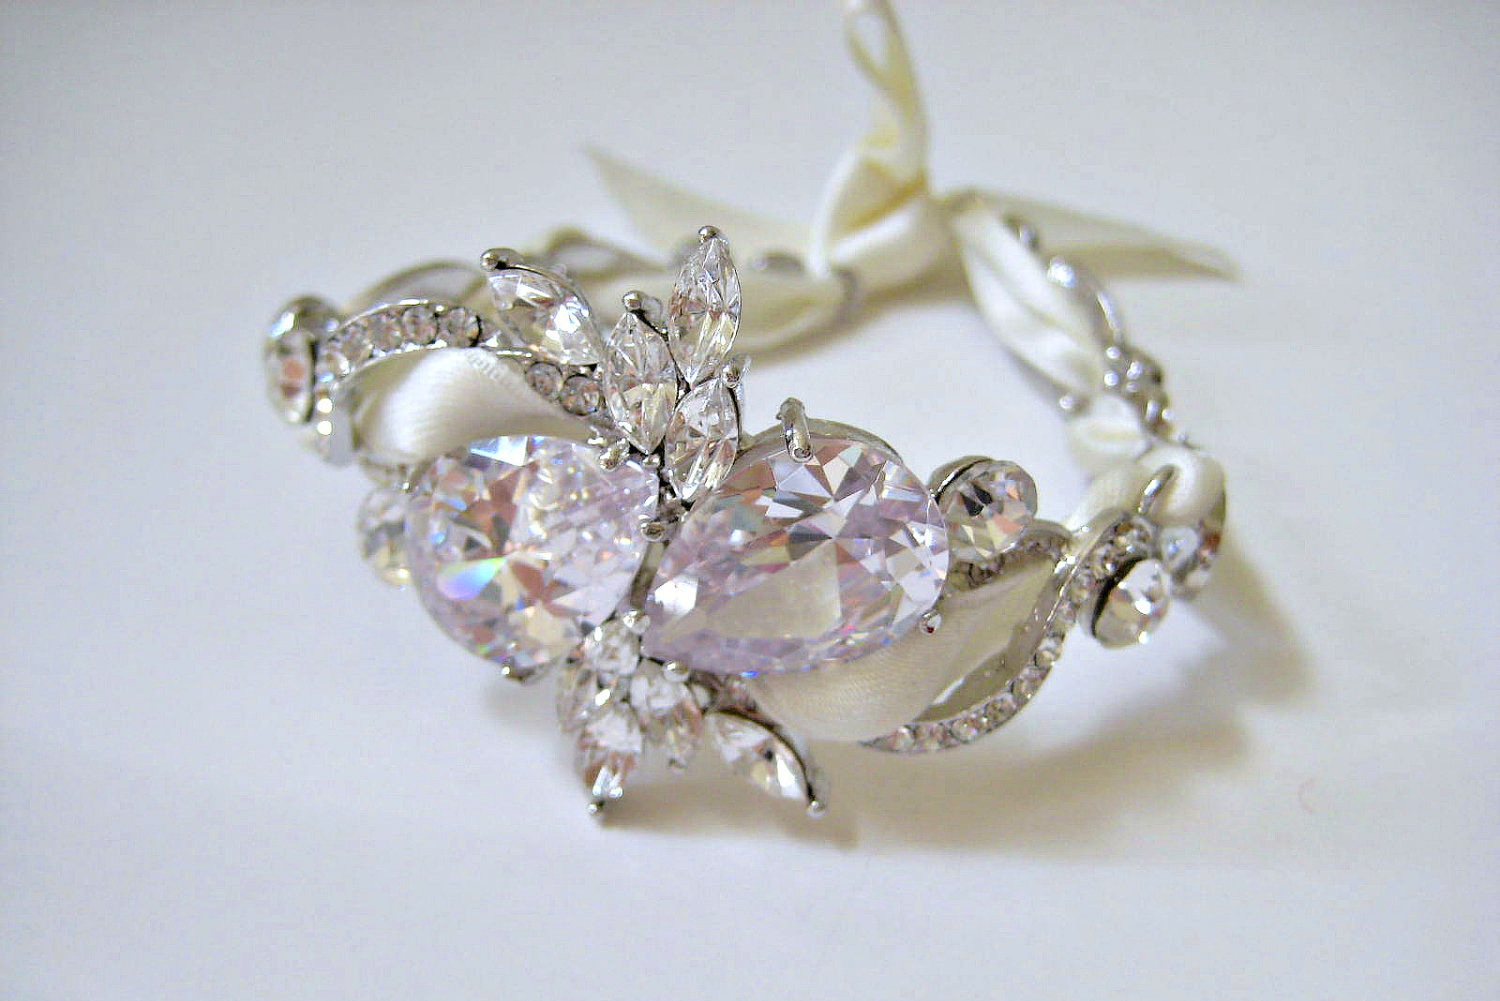 Bejeweled-bride-wedding-accessories-delicate-bracelet.original